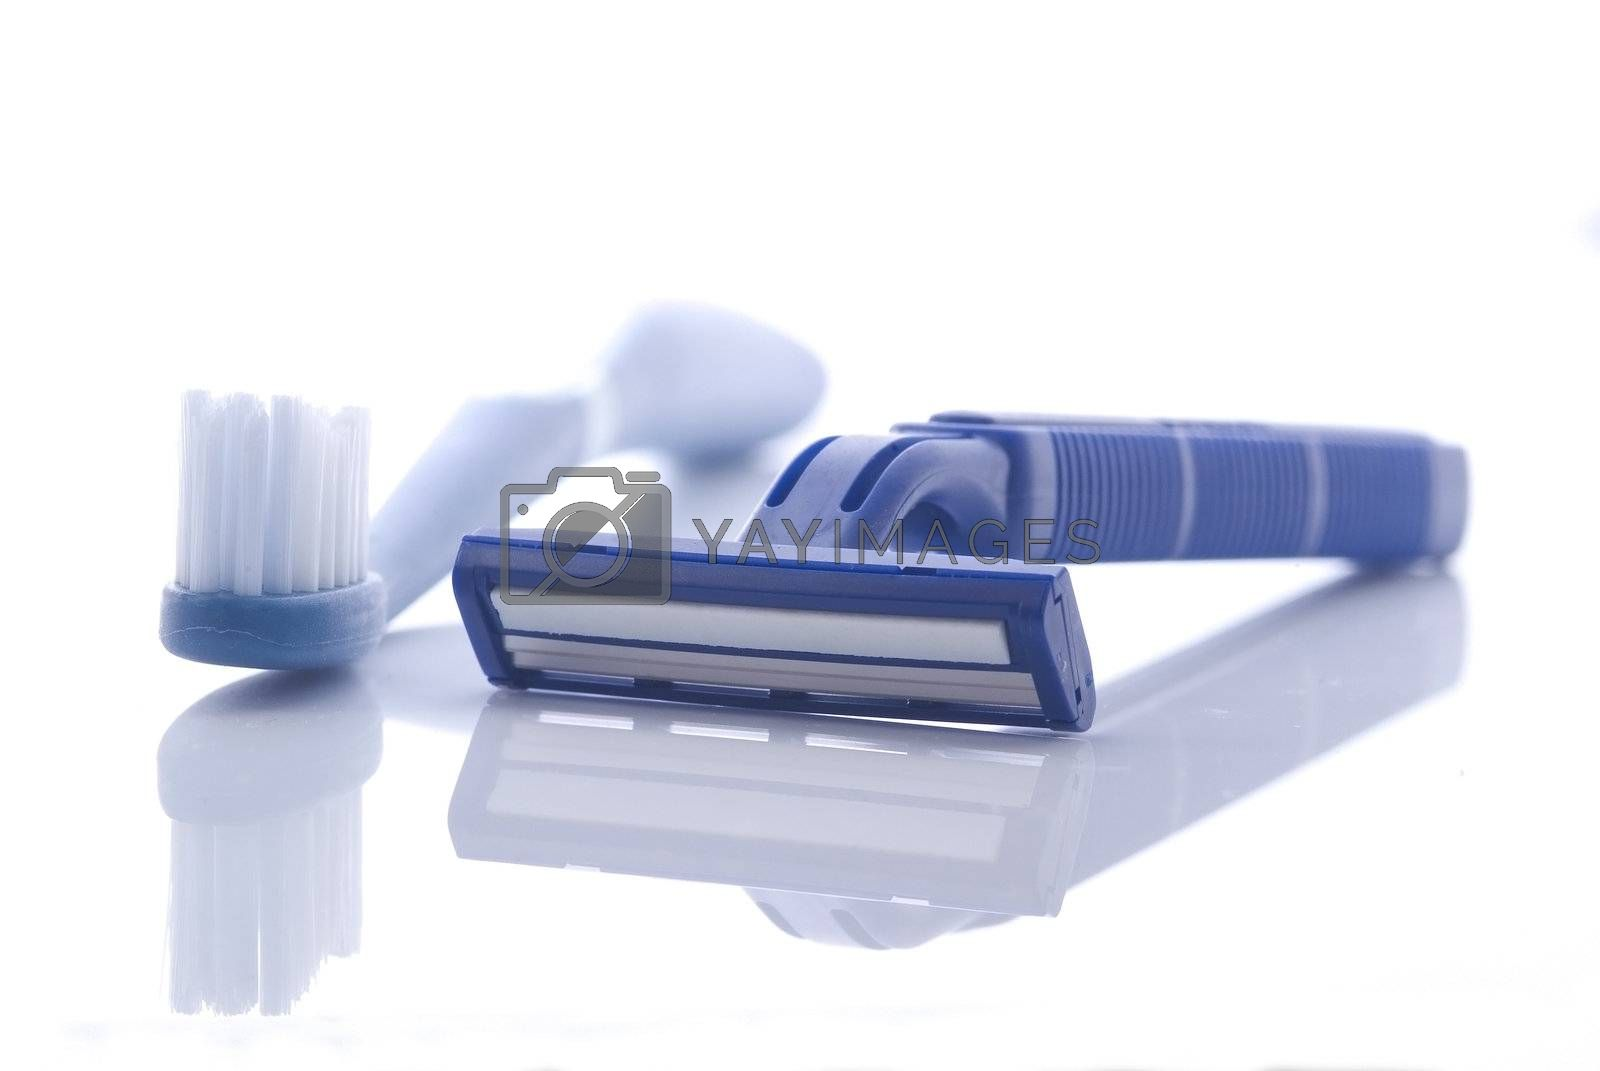 Razor and toothbrush on white by epixx